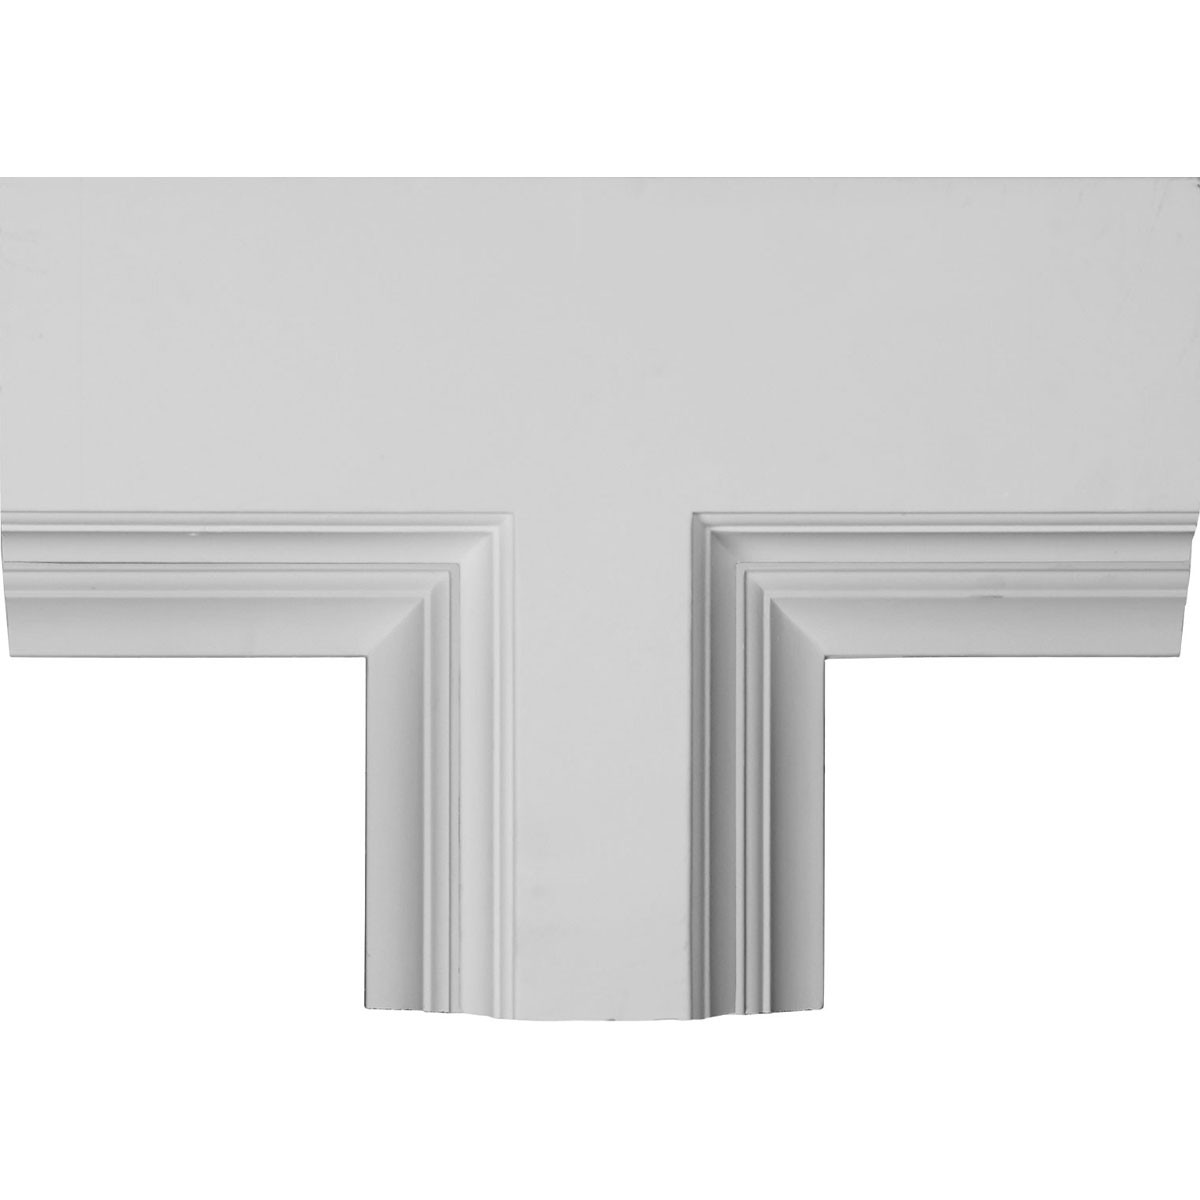 "EM-CC08PTE04X14X20DE - 14""W x 4""P x 20""L Perimeter Tee for 8"" Deluxe Coffered Ceiling System (Kit)"